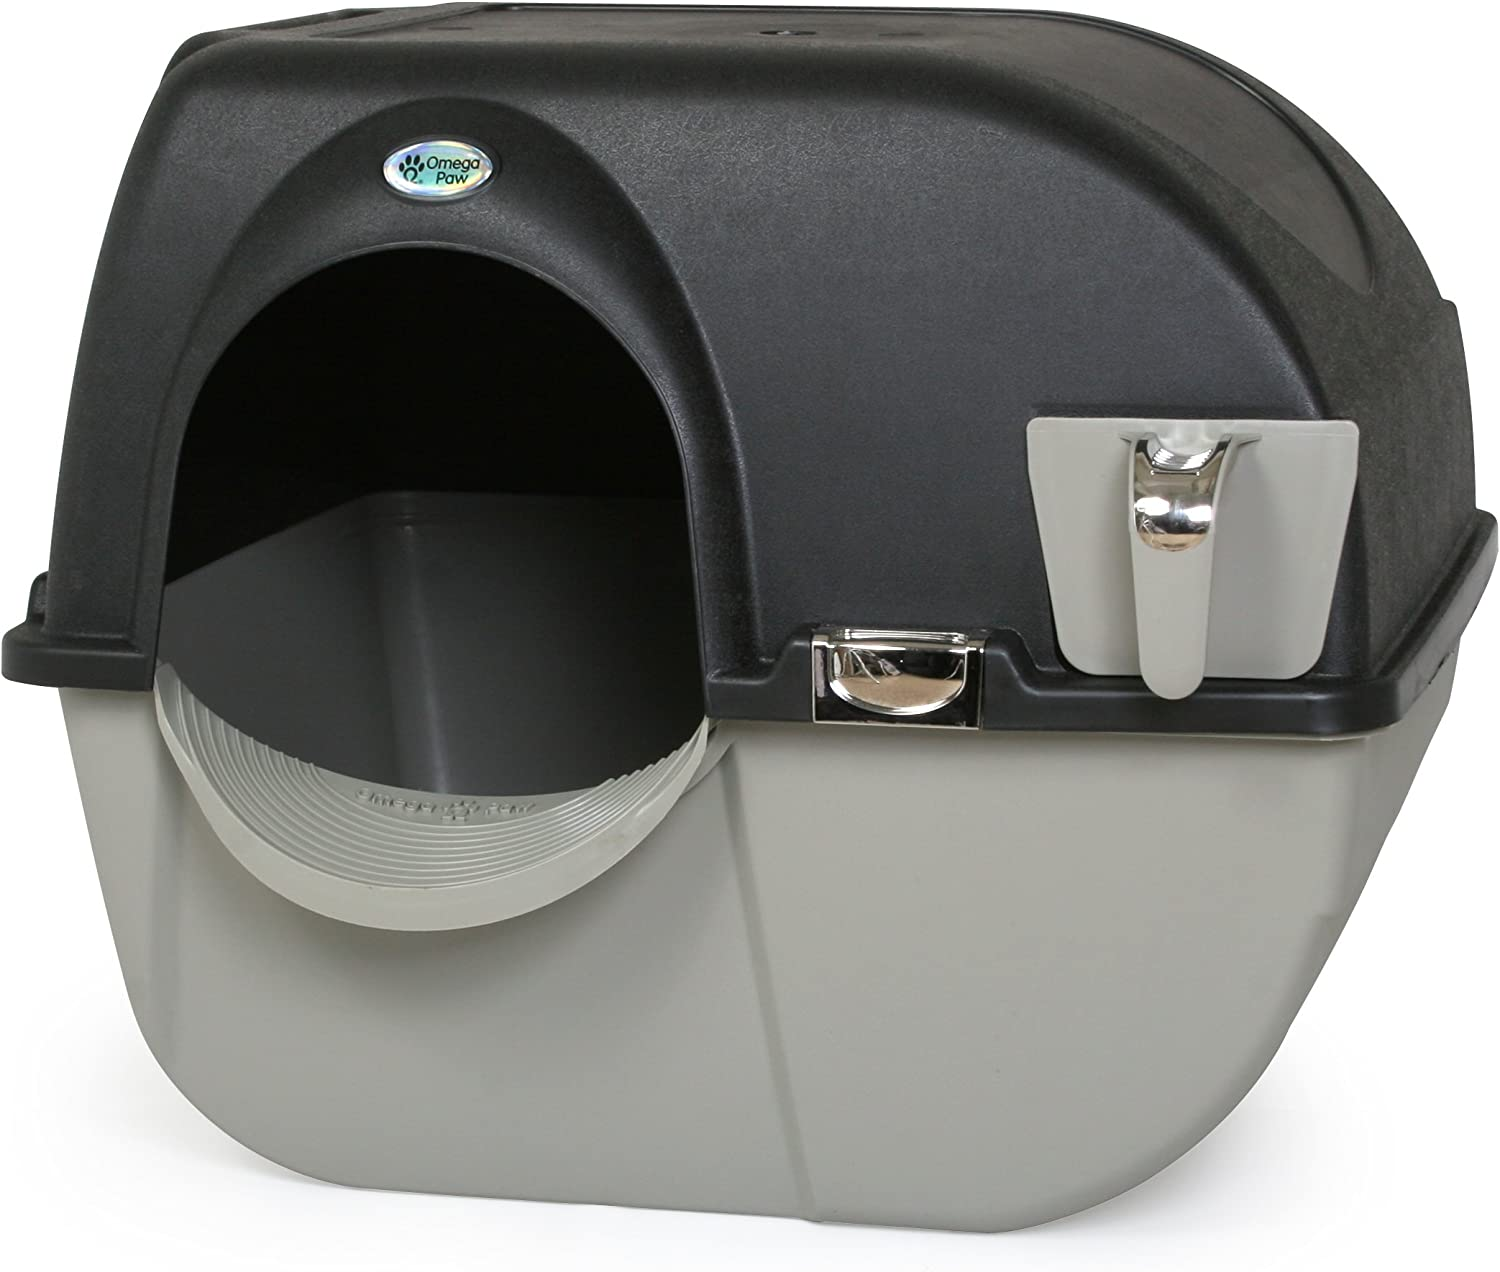 Top 10 Best Self Cleaning Litter Box For Large Cats [Updated November 2020] 12